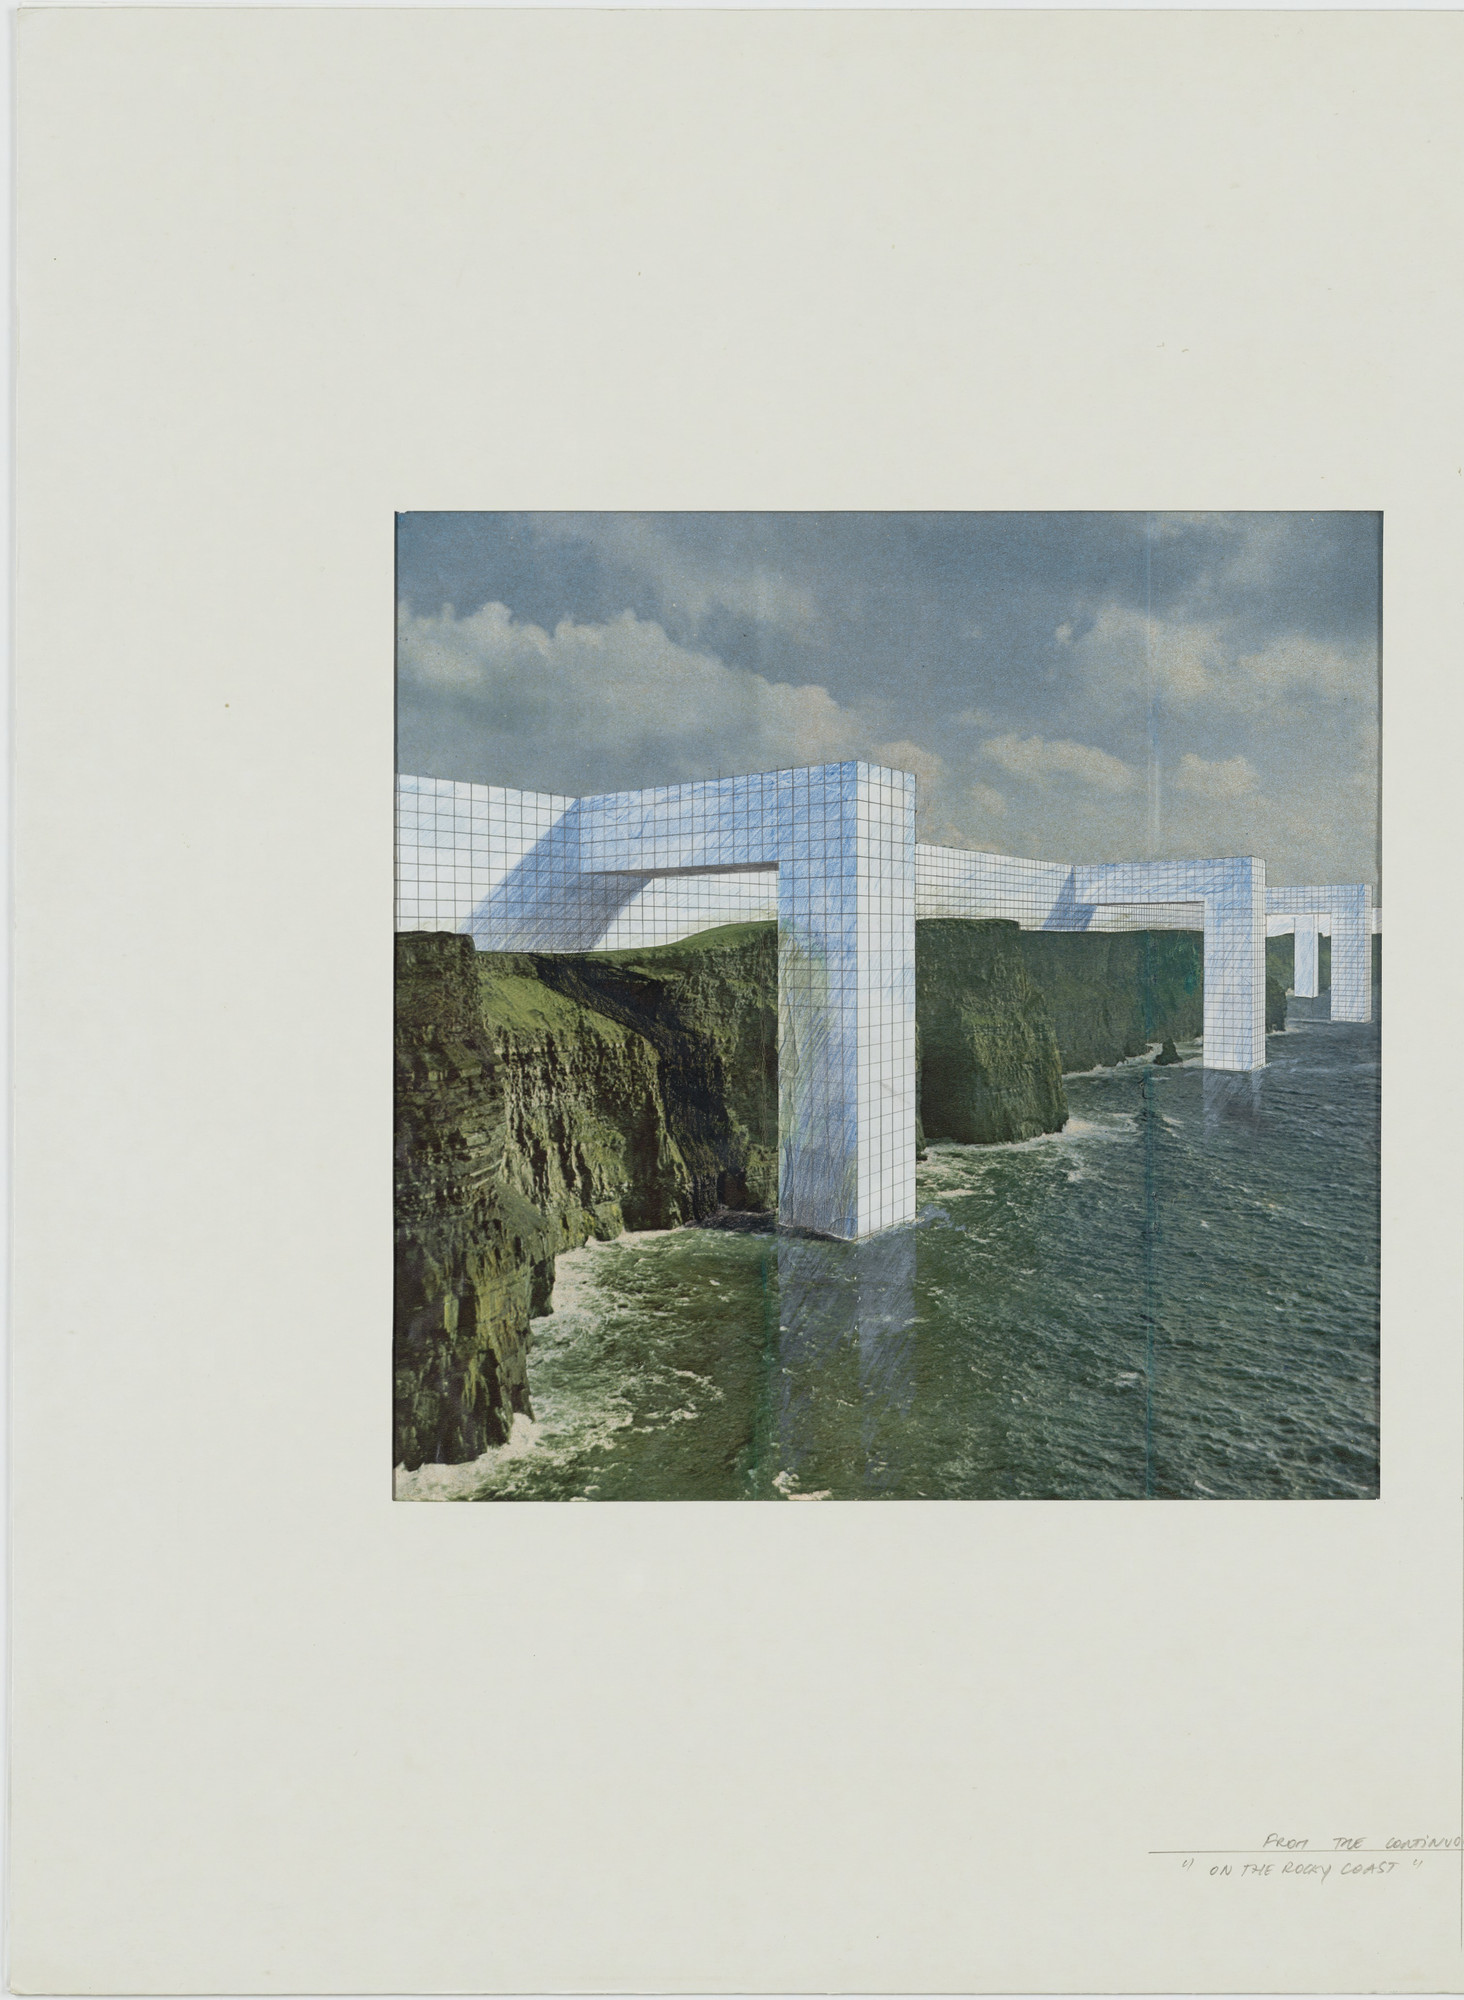 Superstudio, Gian Piero Frassinelli, Alessandro Magris, Roberto Magris, Cristiano Toraldo di Francia, Adolfo Natalini. The Continuous Monument: On the Rocky Coast, project (Perspective). 1969